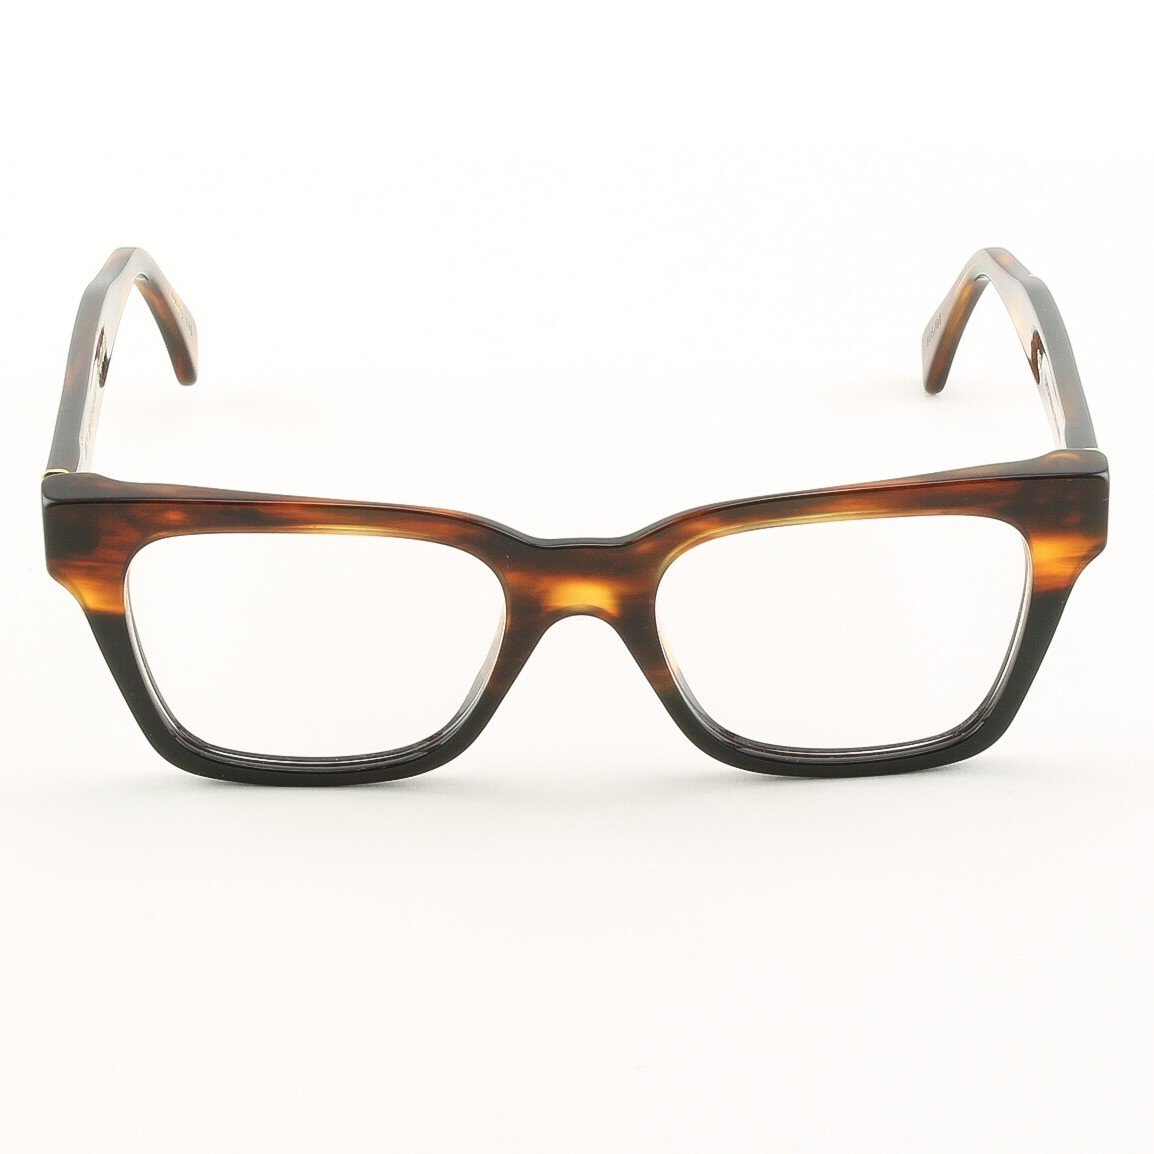 Super America 805 Eyeglasses Striped Tobacco and Black with Clear Zeiss Lenses by RETROSUPERFUTURE